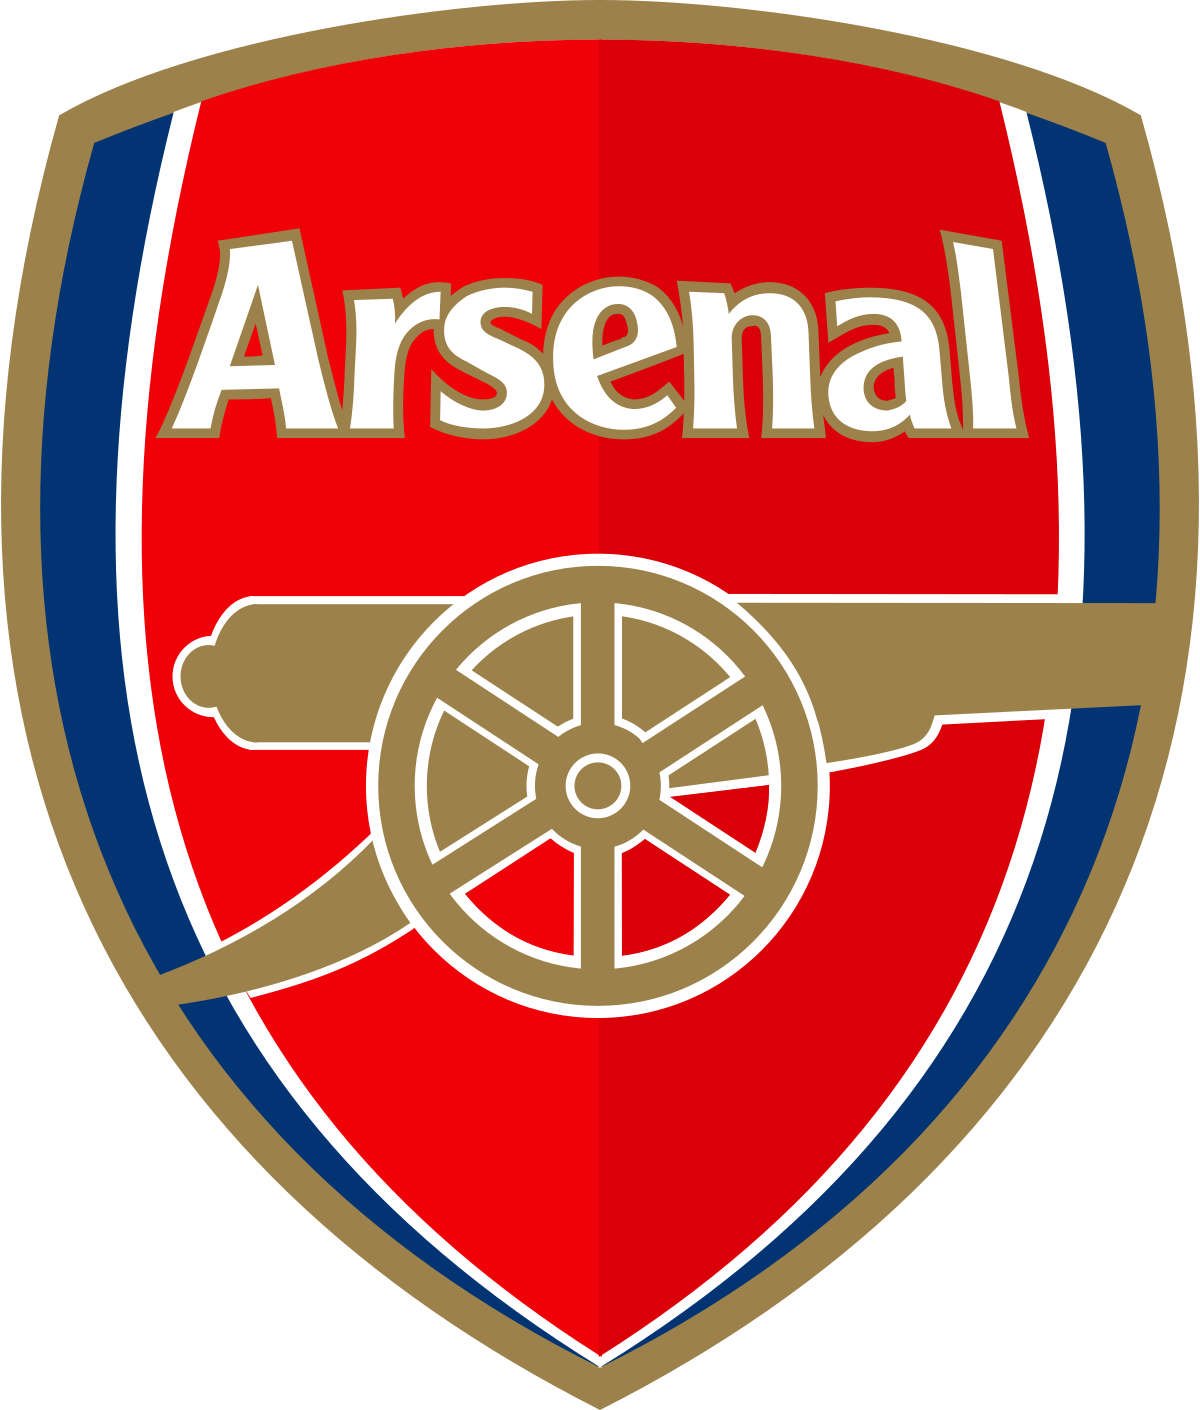 We've seen the footage, we cannot imagine the pain - Arsenal FC lends voice to the #EndSARS crisis lindaikejisblog